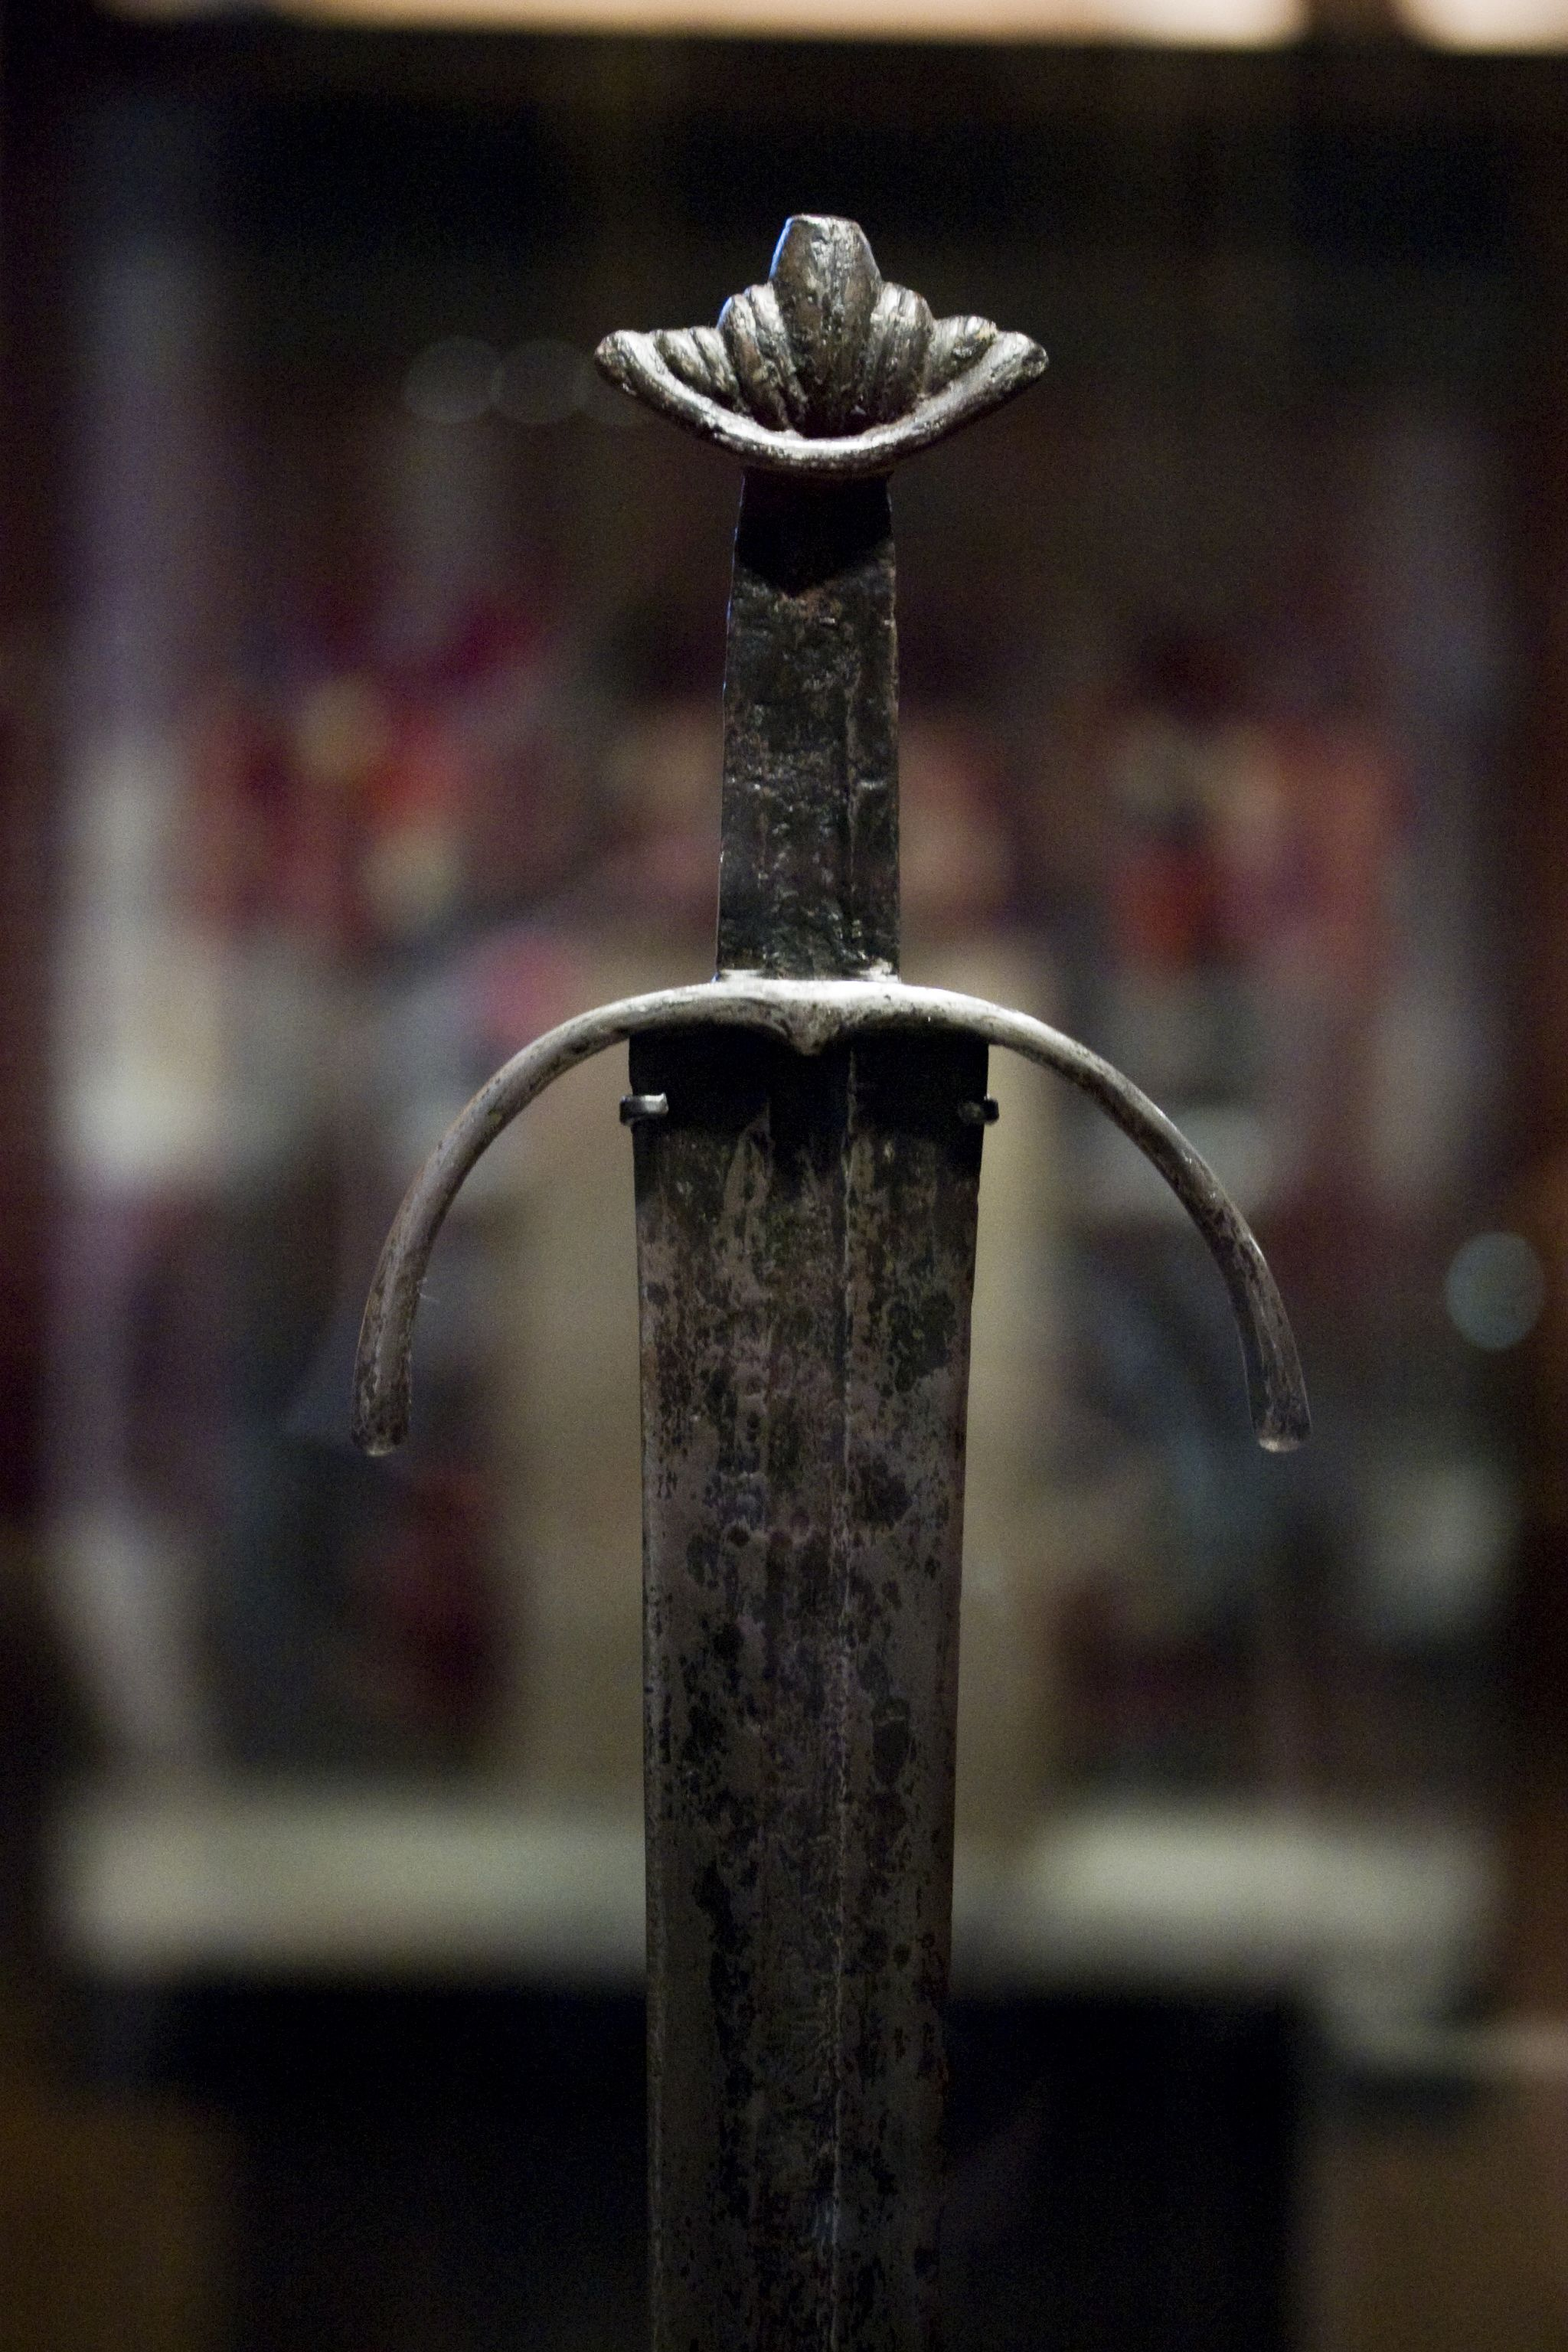 The Cawood Sword Is Regarded As One Of Finest Viking Swords Ever C 1000b Wiring Diagram For Discovered It Nearly 1000 Years Old And Fifth Its Type To Be